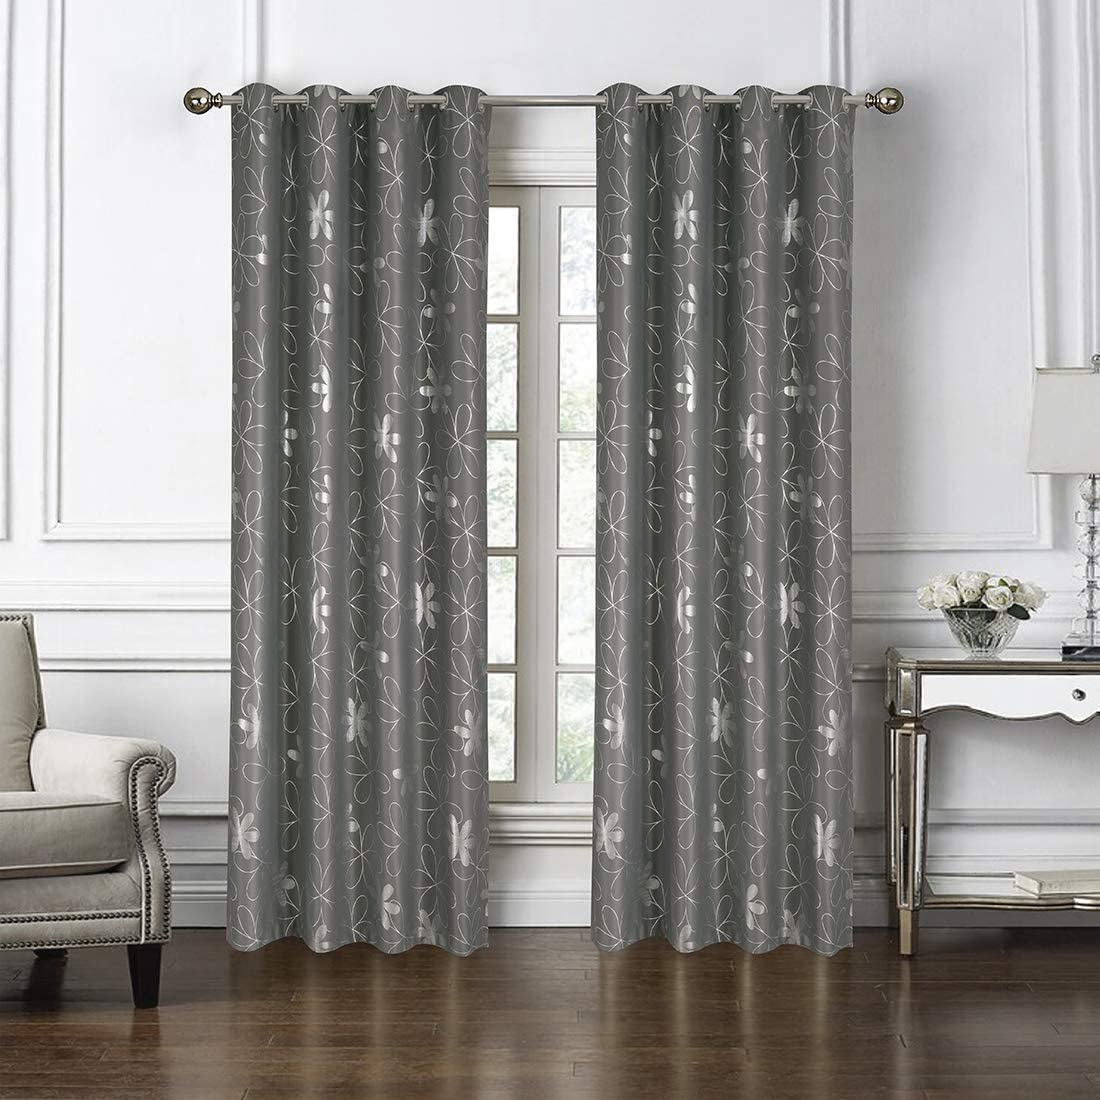 Domook Smooth Flower Printed Gray Blackout Thermal Insulated Grommet Top Window Curtains Panels for Bedroom Living Room Kitchen, 1 Panel, Flower, 52 W x 84 L